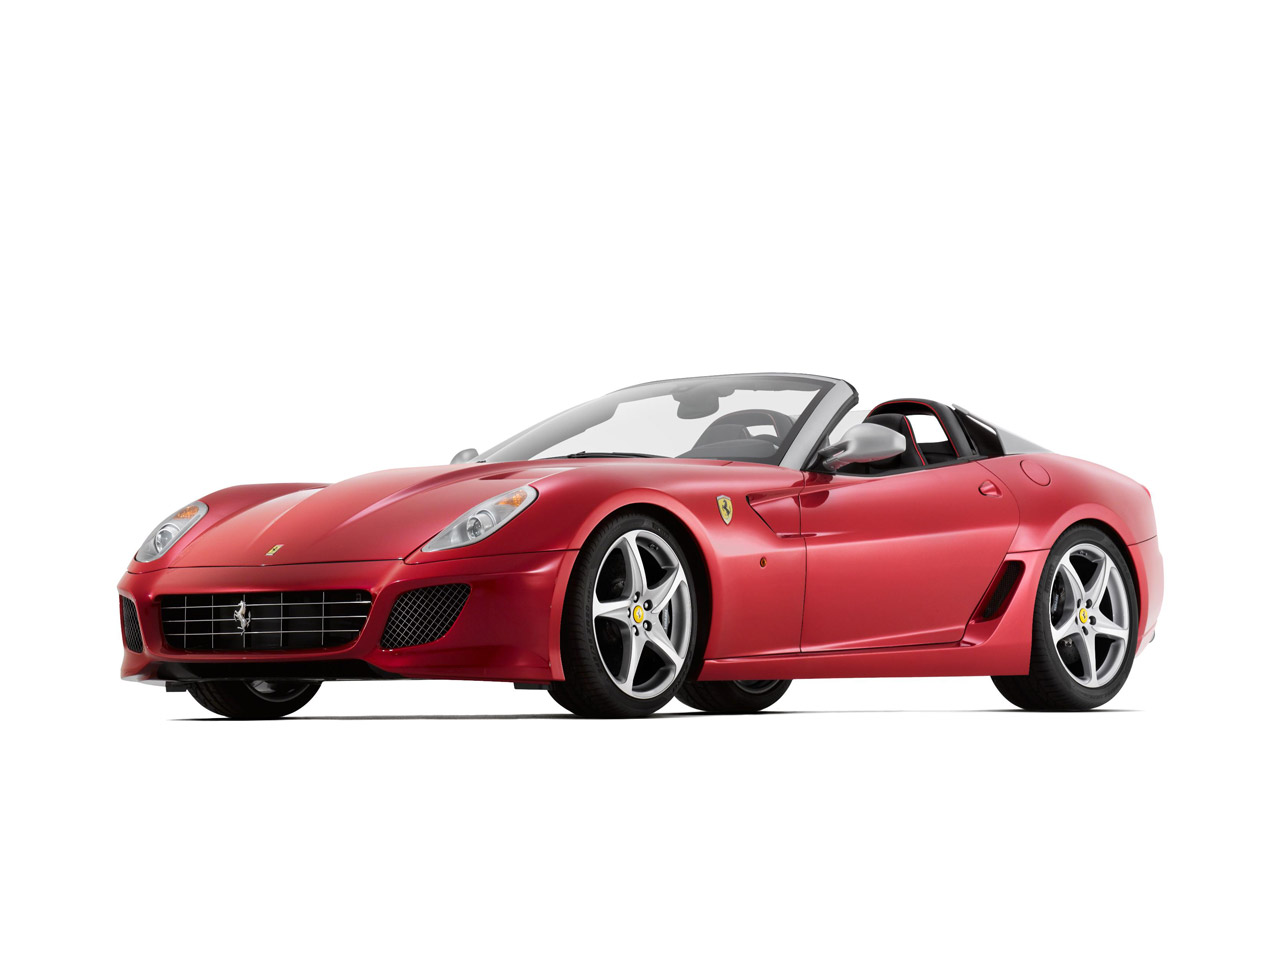 03 sa 2011 Ferrari 599 SA Aperta   Photos, Features, Price